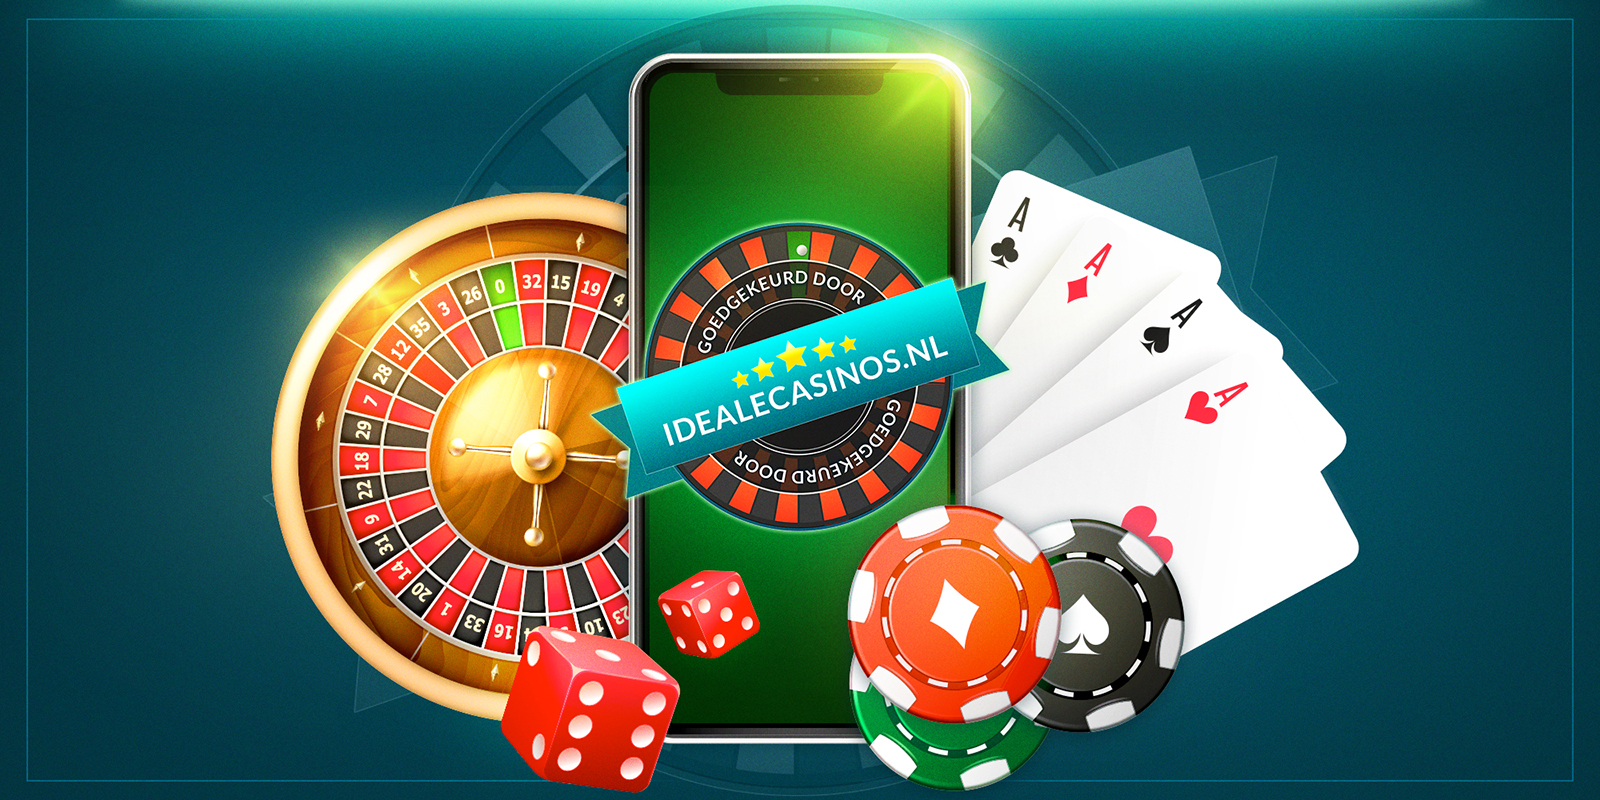 gambling poker casino games card game indoor games and sports